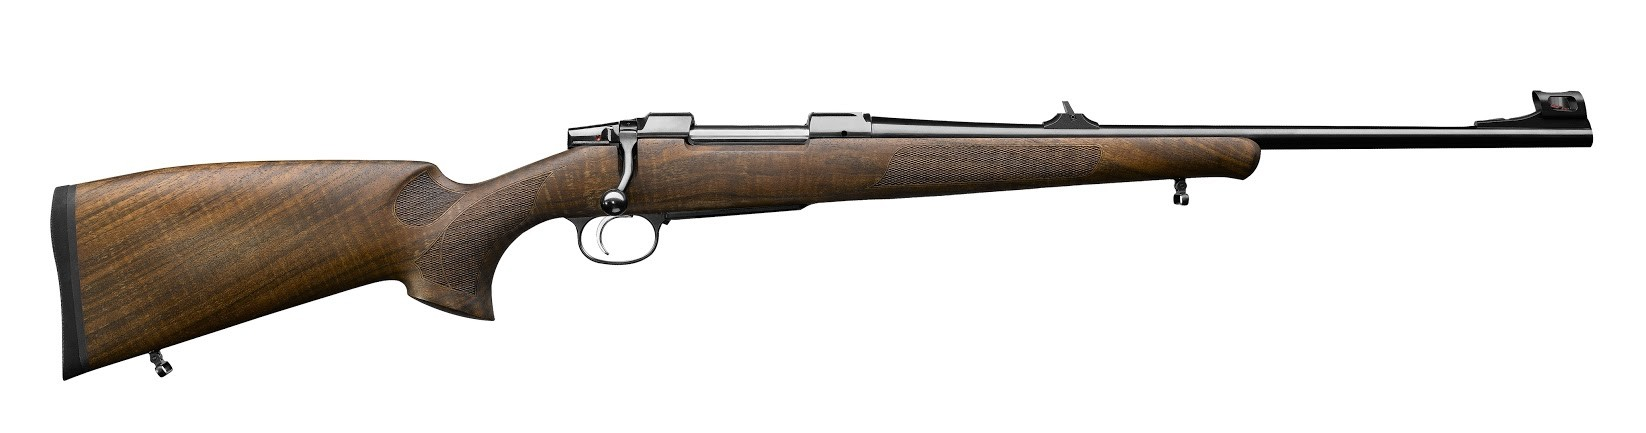 CZ 557 LUXE